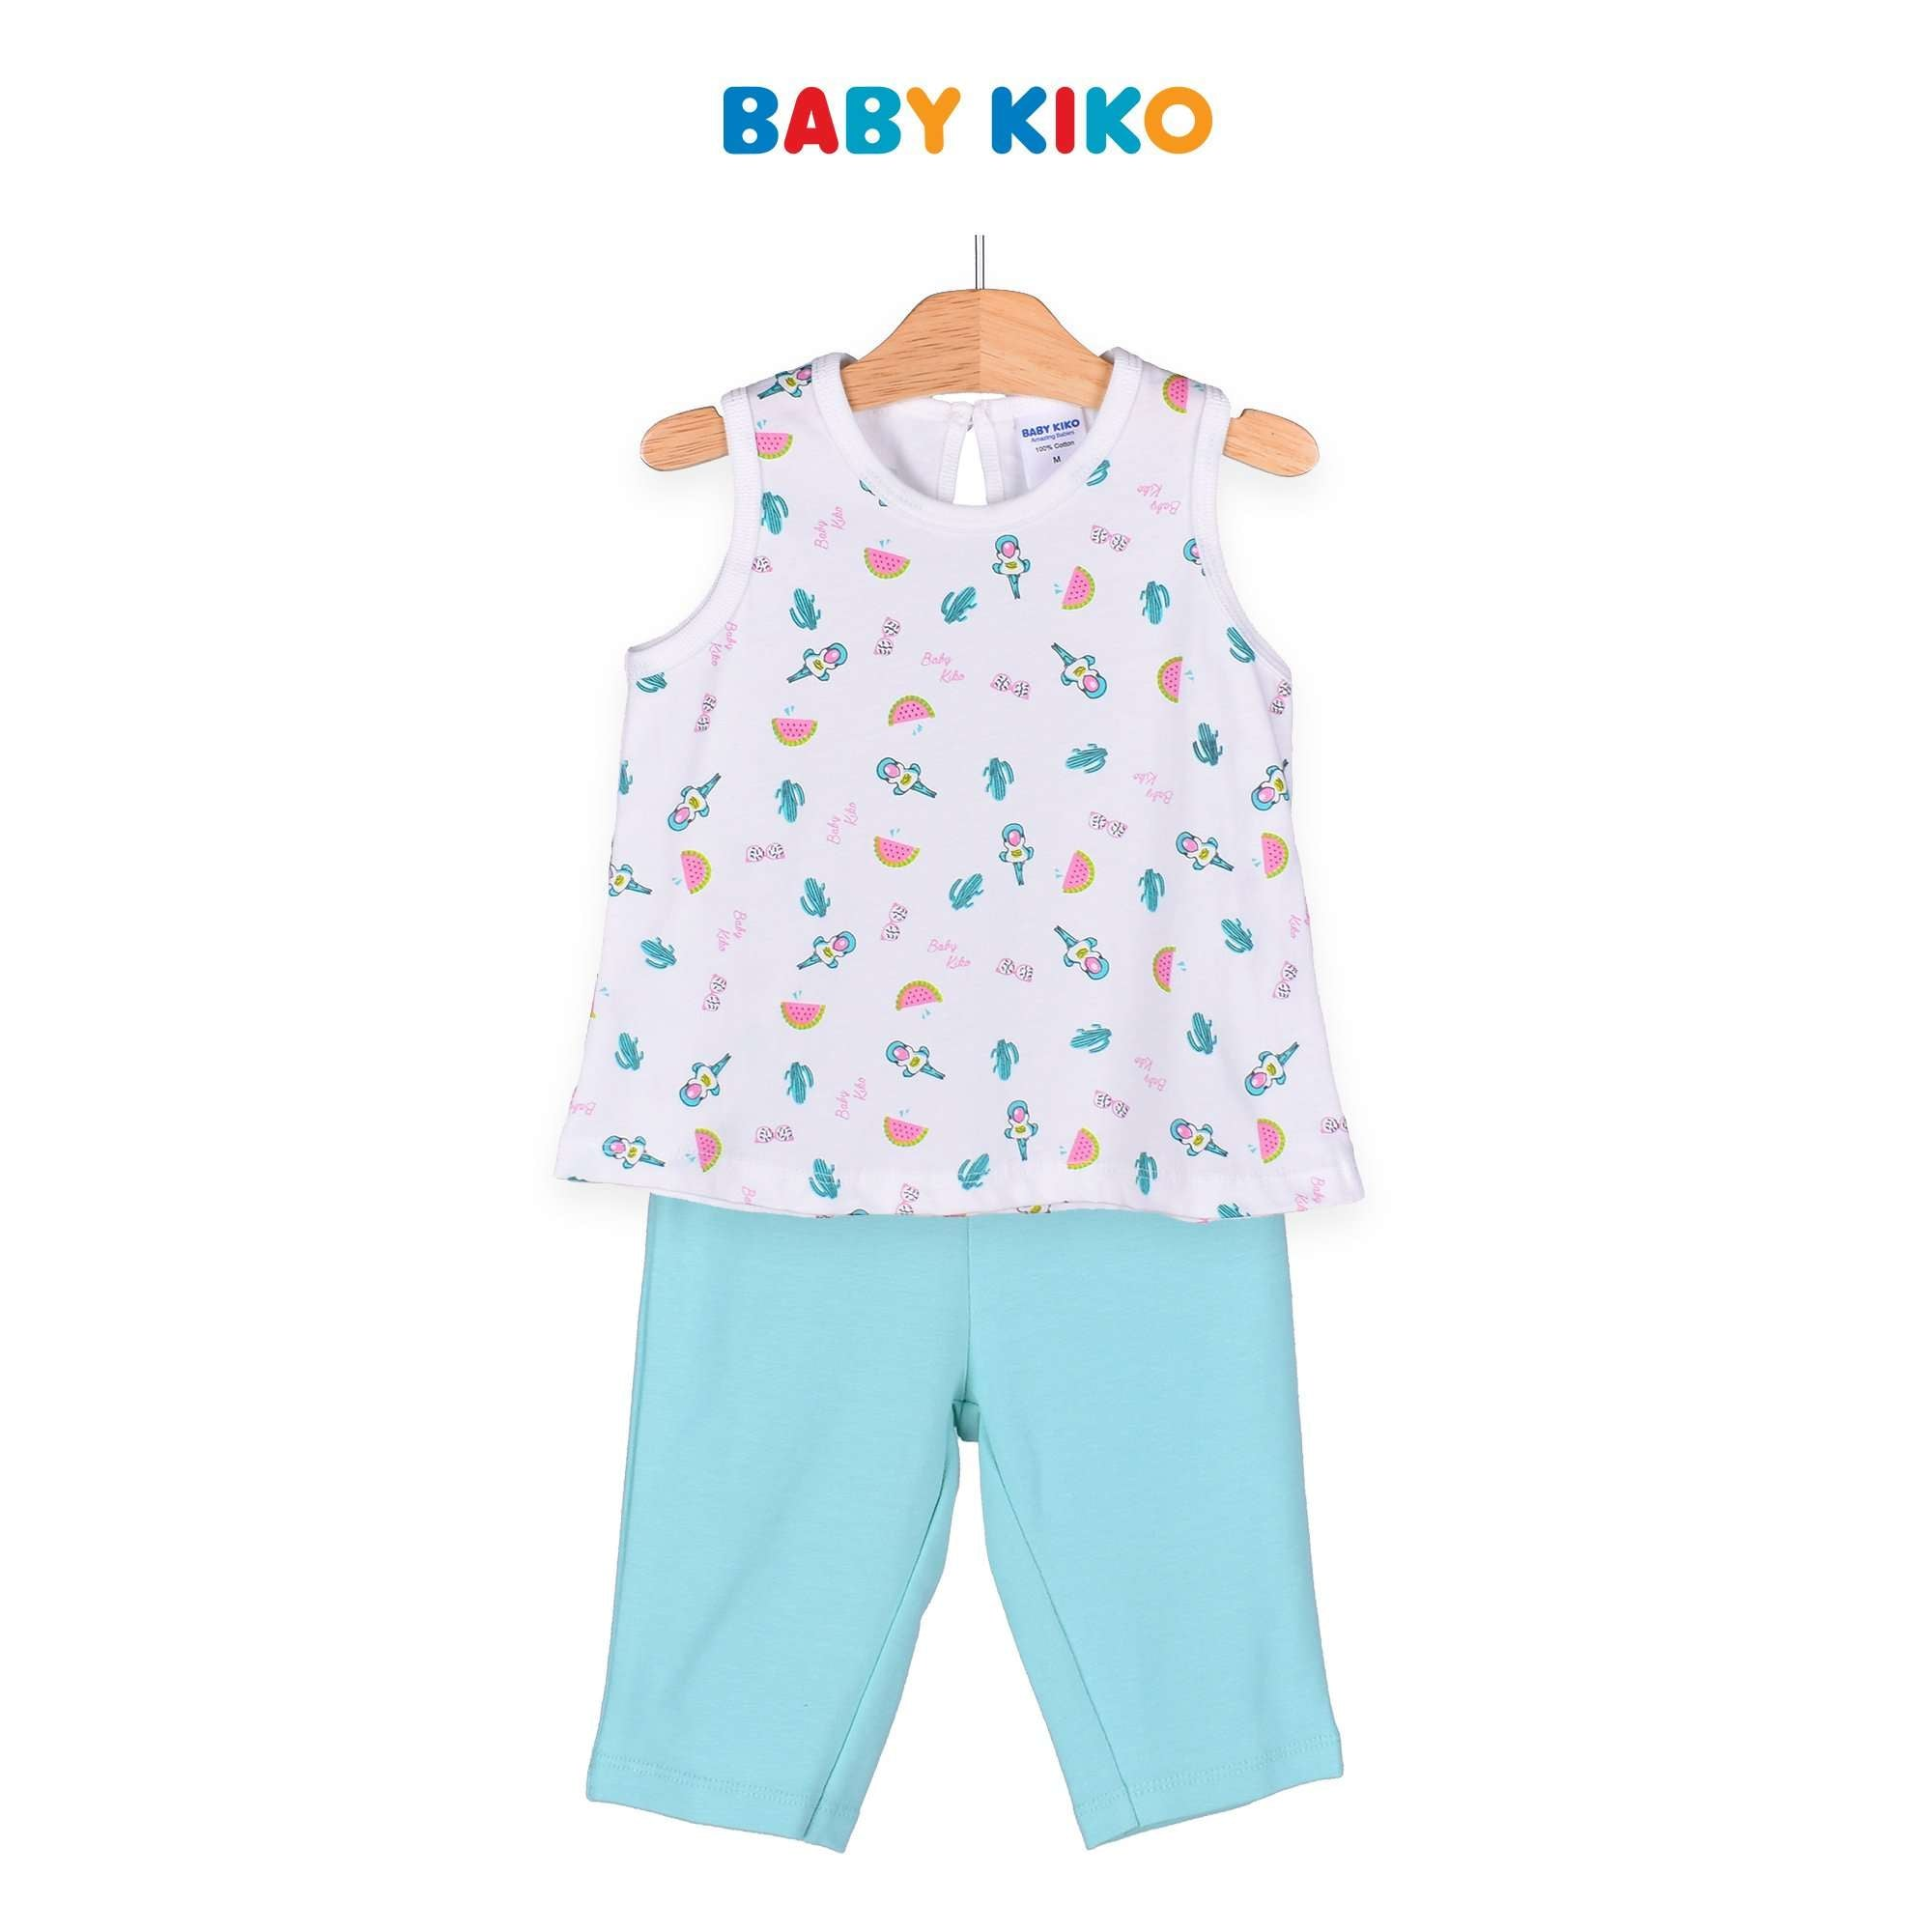 Baby KIKO Toddler Girl Sleeveless Bermuda Suit - Light Green 325158-402 : Buy Baby KIKO online at CMG.MY